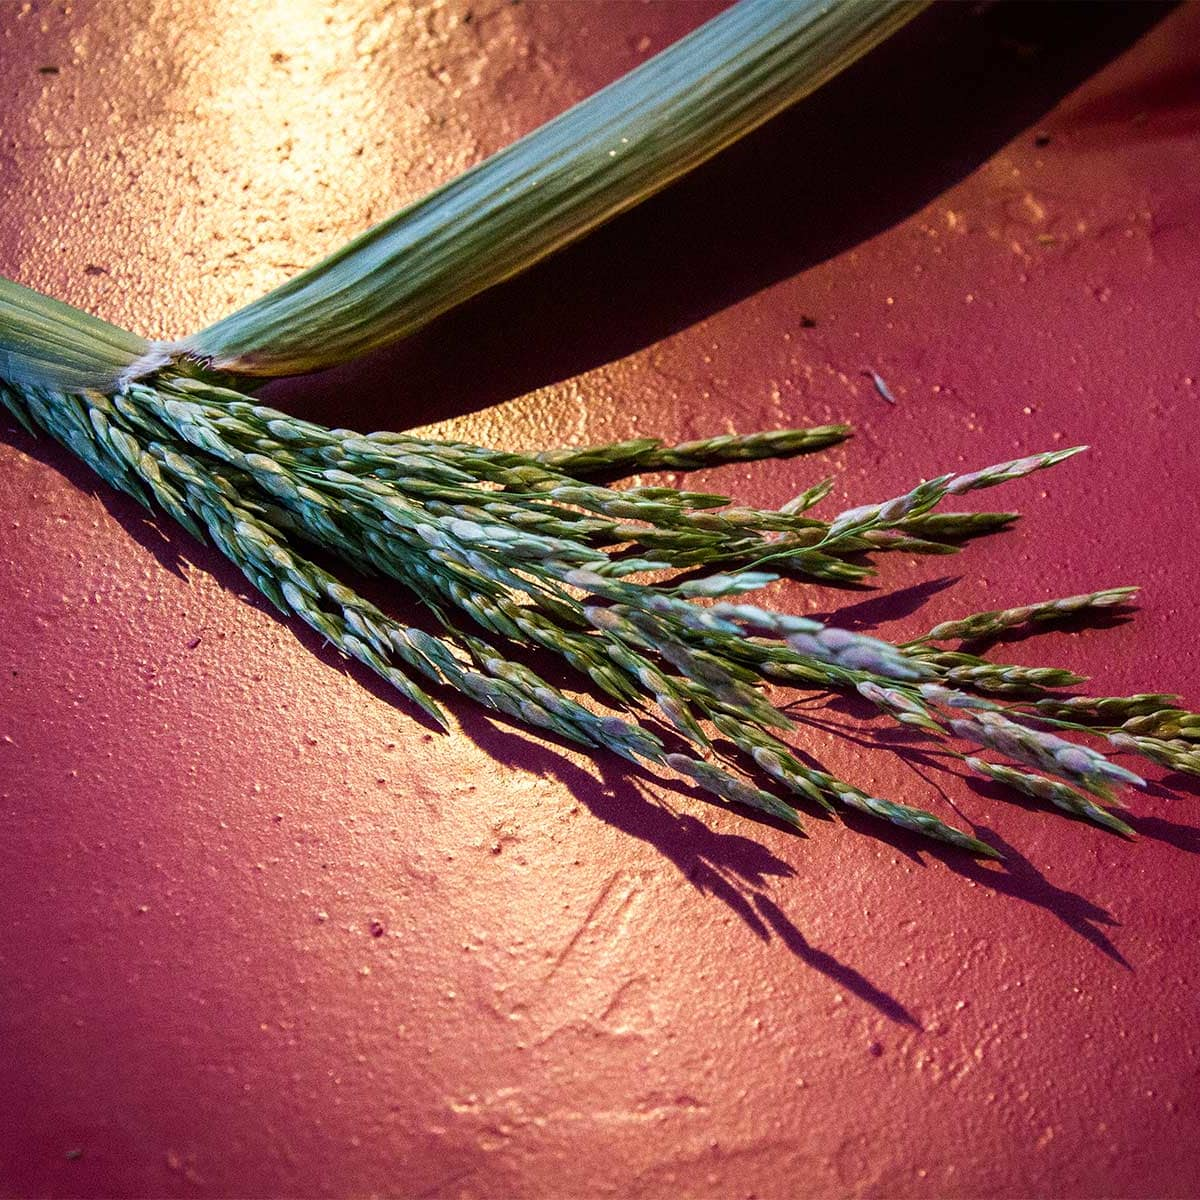 photo of grass seed head